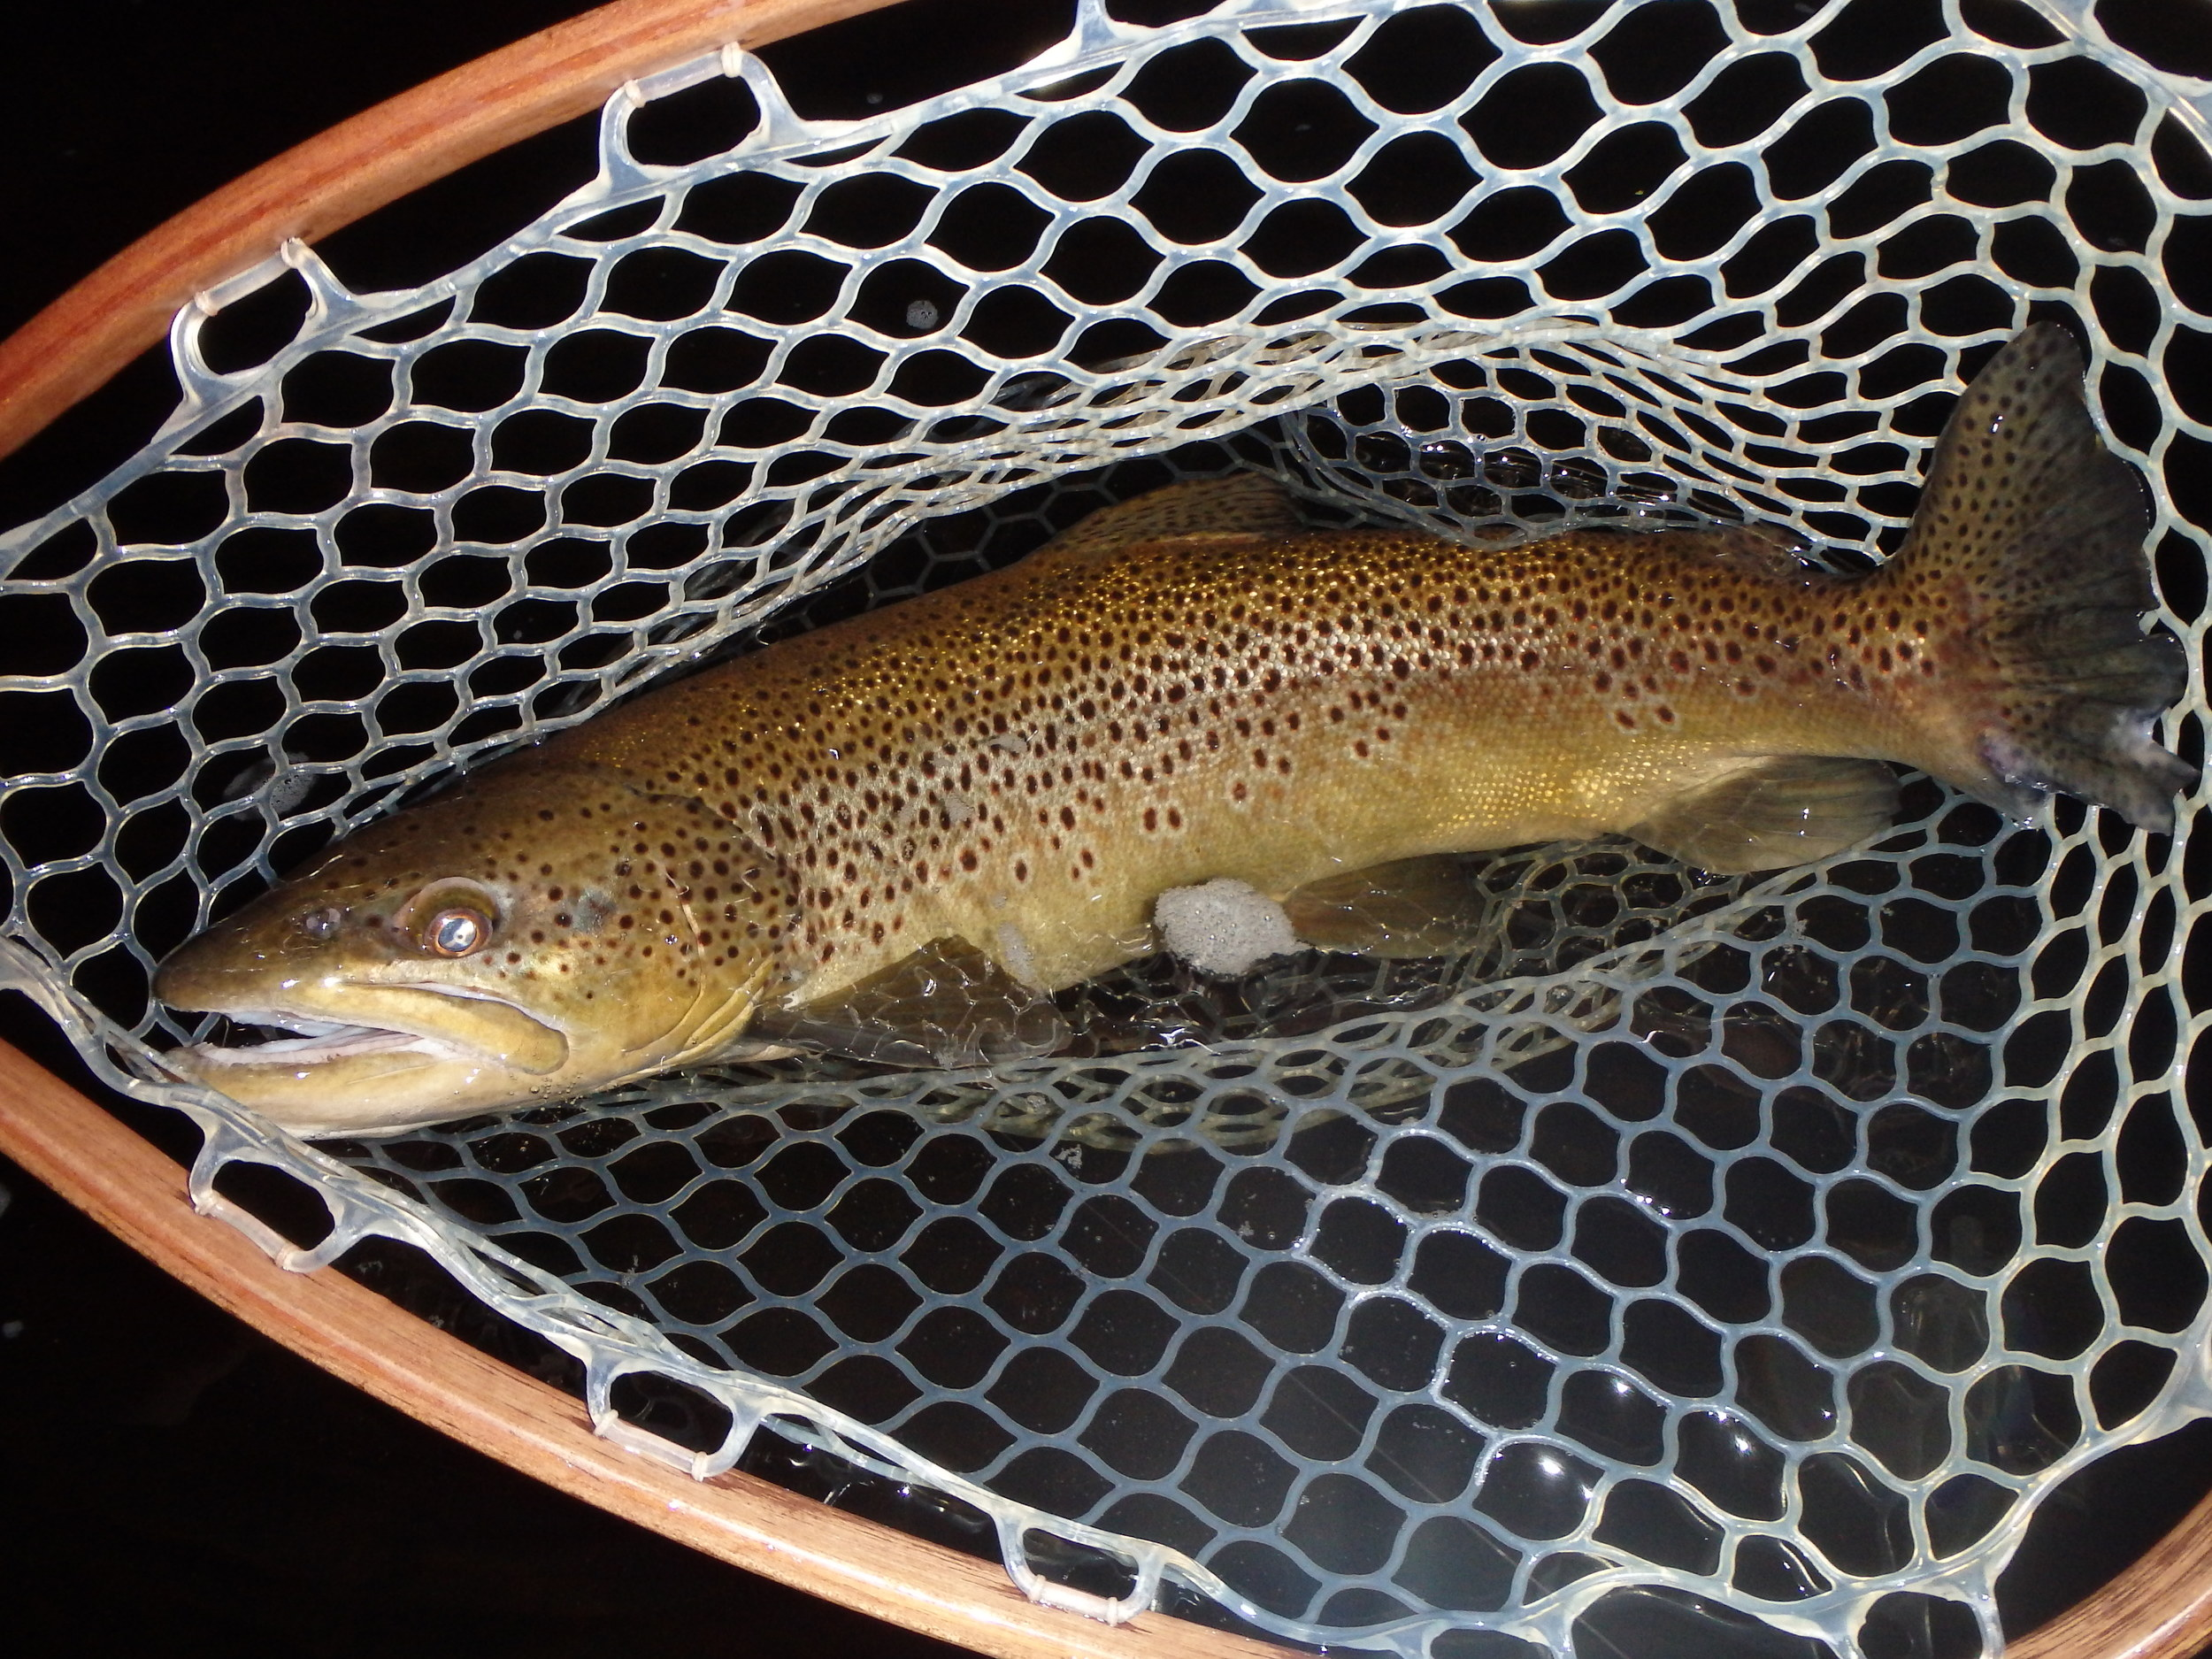 This BWO activity can bring some larger fish to the surface to sip dry flies. The Brown Trout was caught in the River Styx on a size 18 BWO Parachute and 6X tippet.